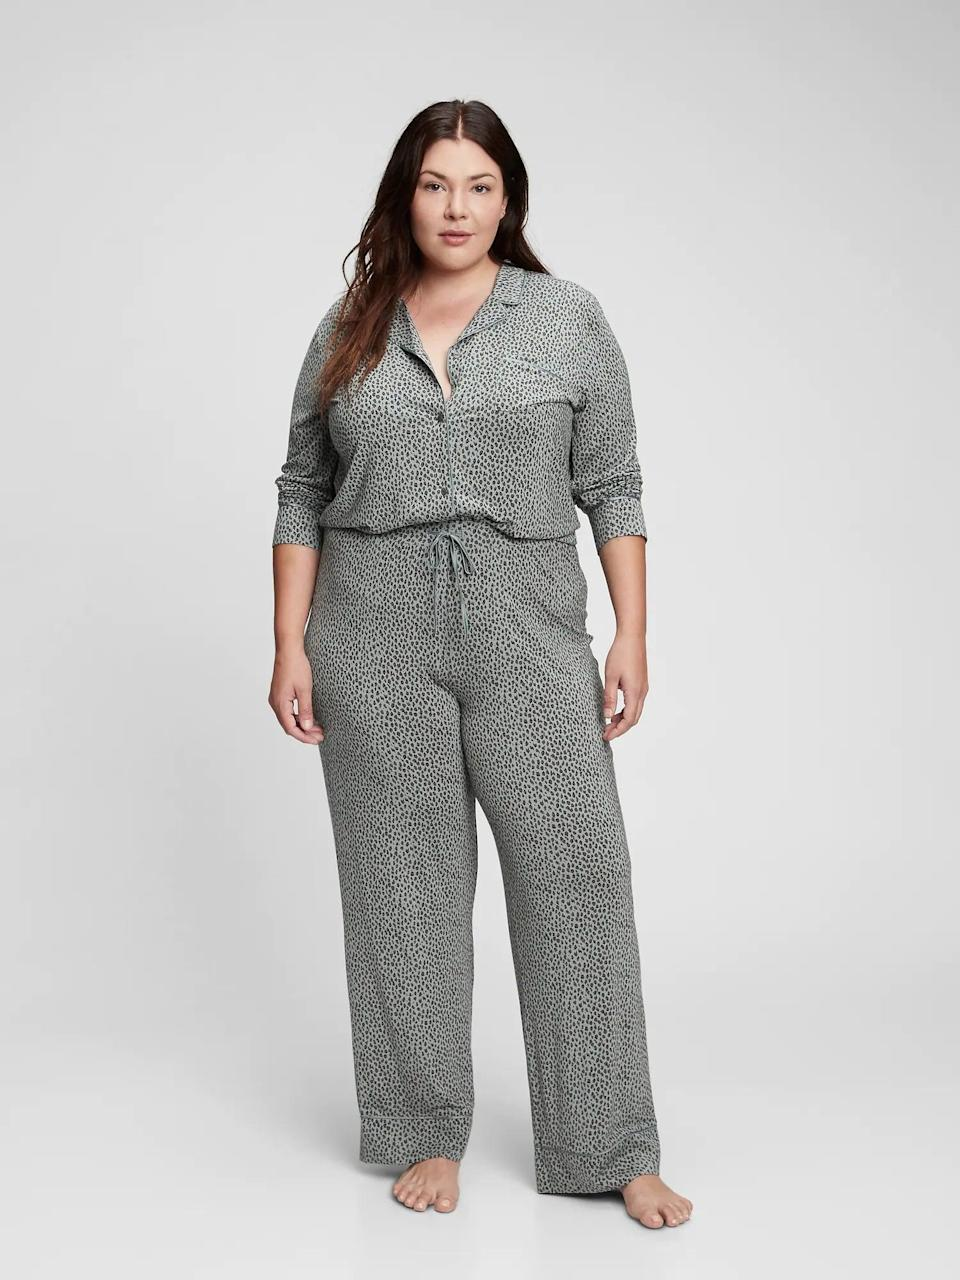 <p>If we could, we'd wear modal pajamas all day long. The fabric is so soft and comfortable, you'll never want to take it off. We love the animal print on these comfortable <span>Gap Adult Truesleep Pants</span> ($31, originally $45) and <span>Truesleep PJ Top in Modal</span> ($27, originally $40).</p>